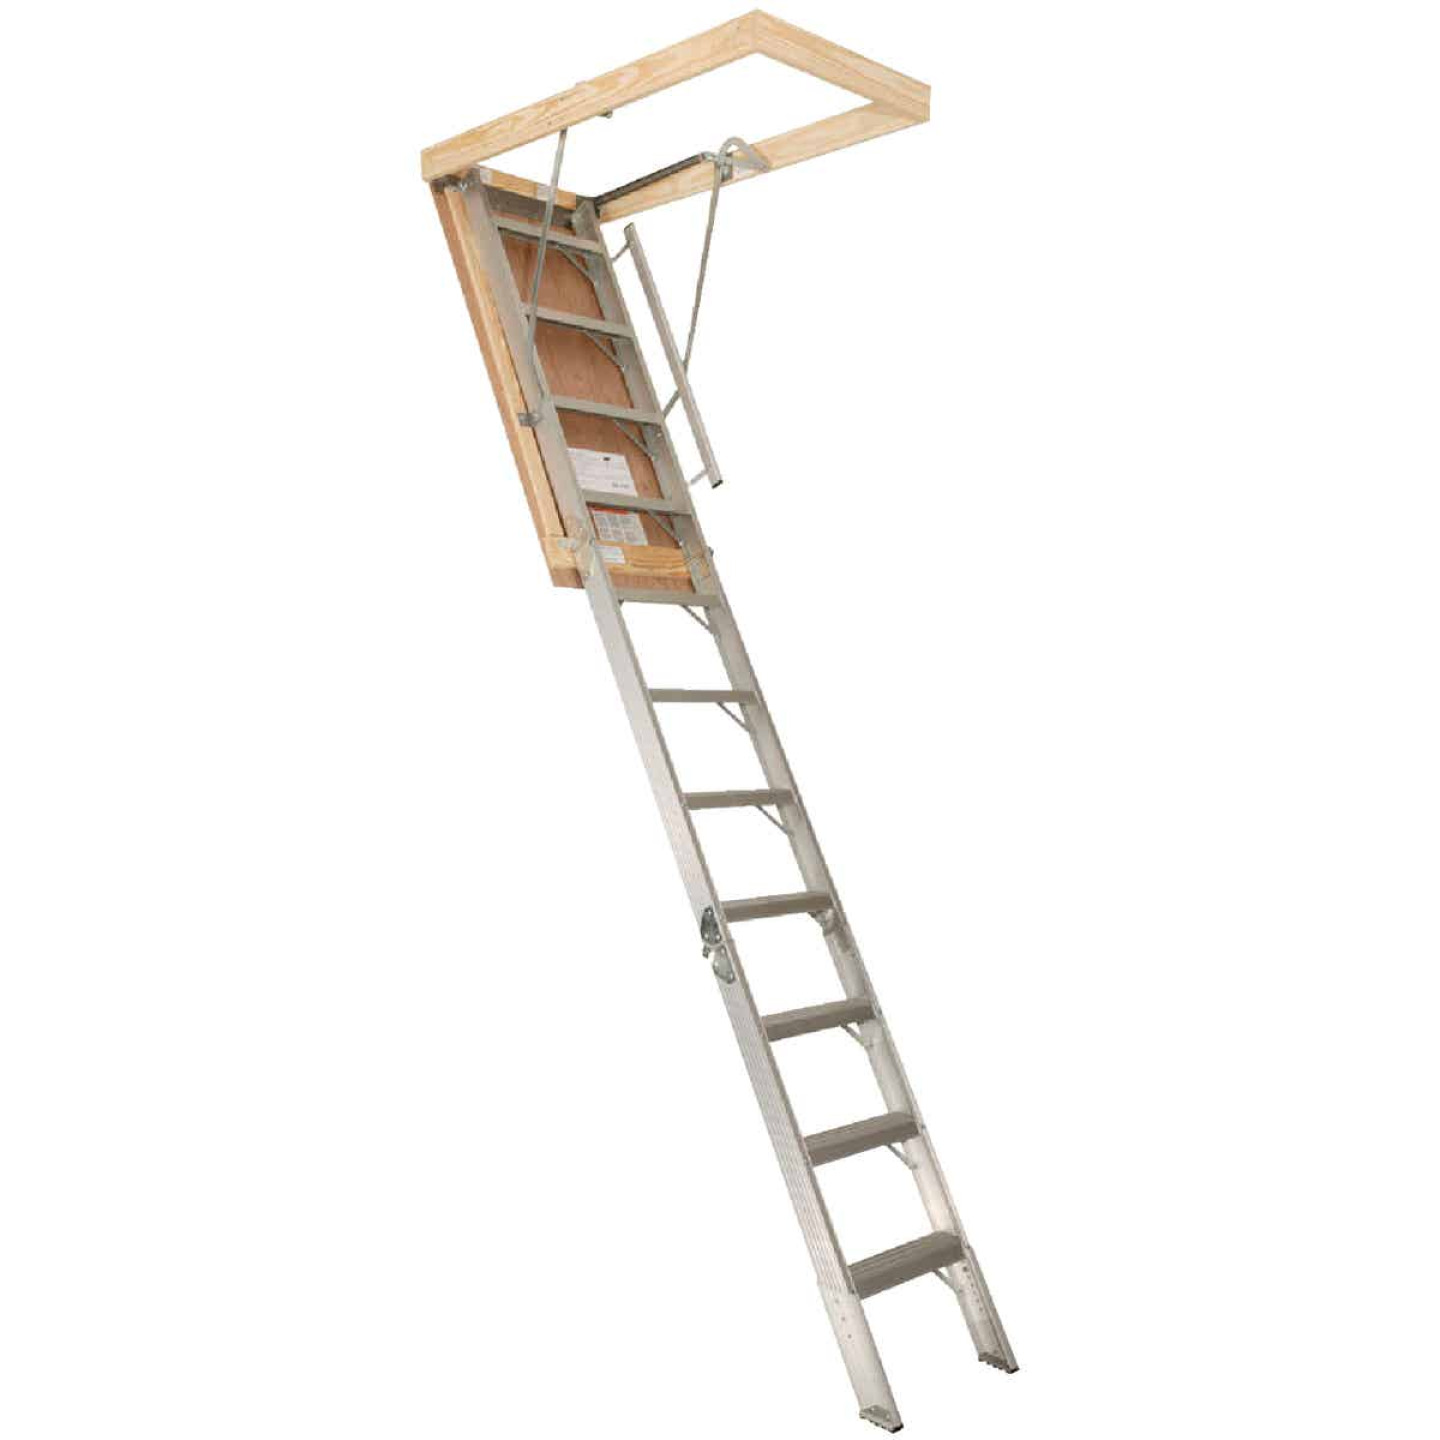 Louisville Elite 7 Ft. 8 In. to 10 Ft. 3 In. 22-1/2 In. x 54 In. Aluminum Attic Stairs, 375 Lb. Load Image 1